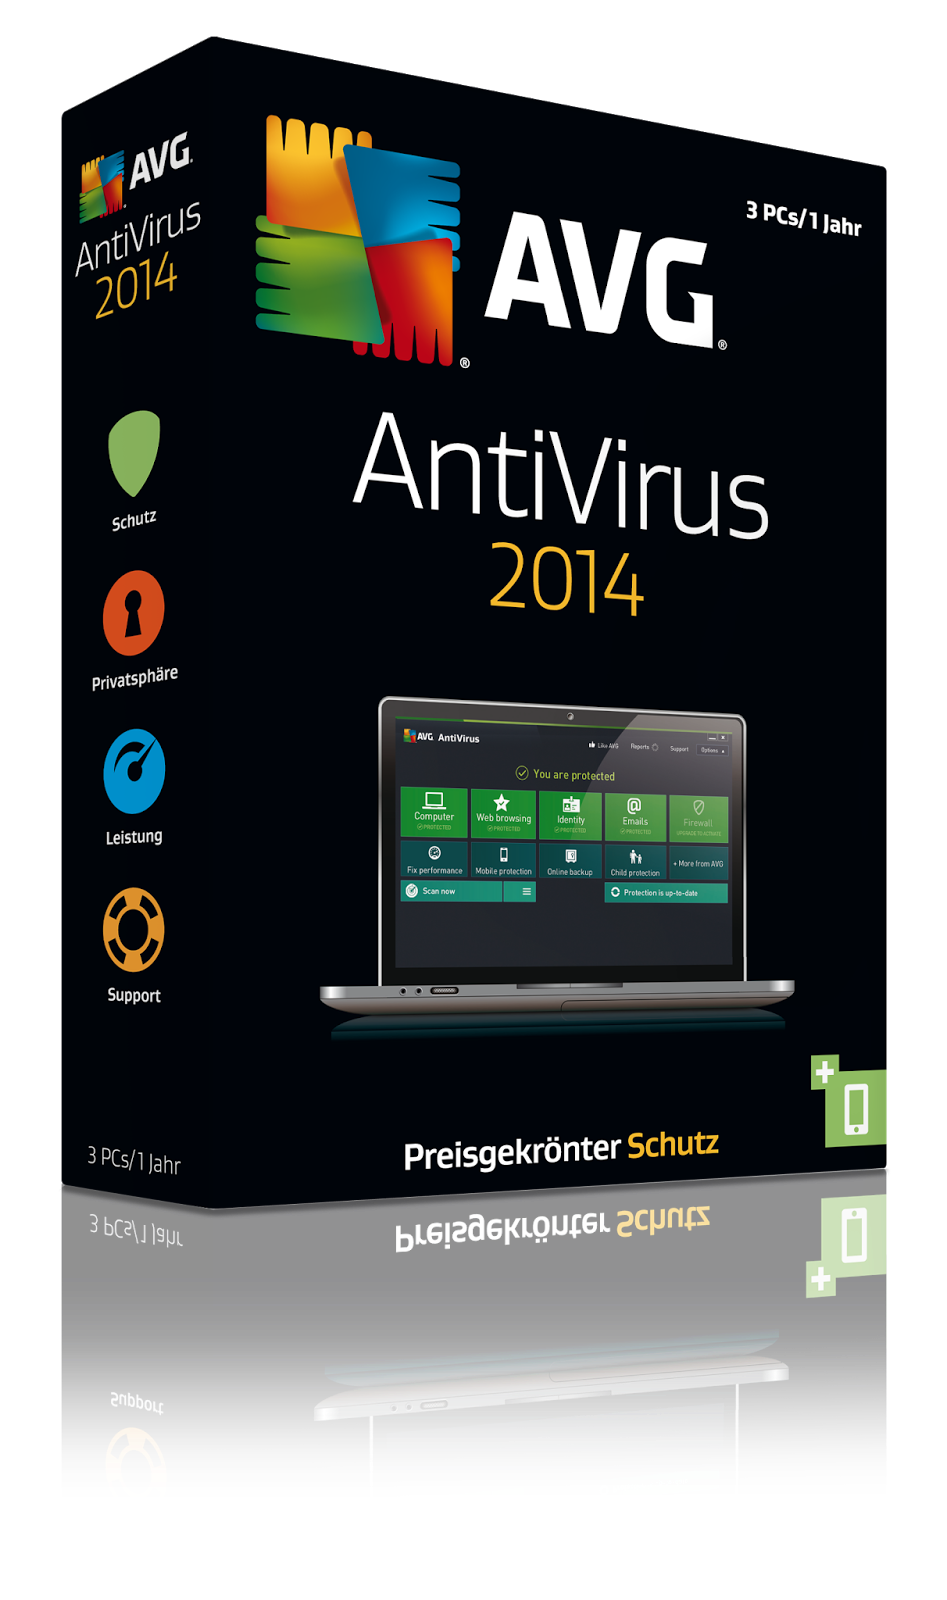 Descargar gratis norton antivirus 2014 para windows 8